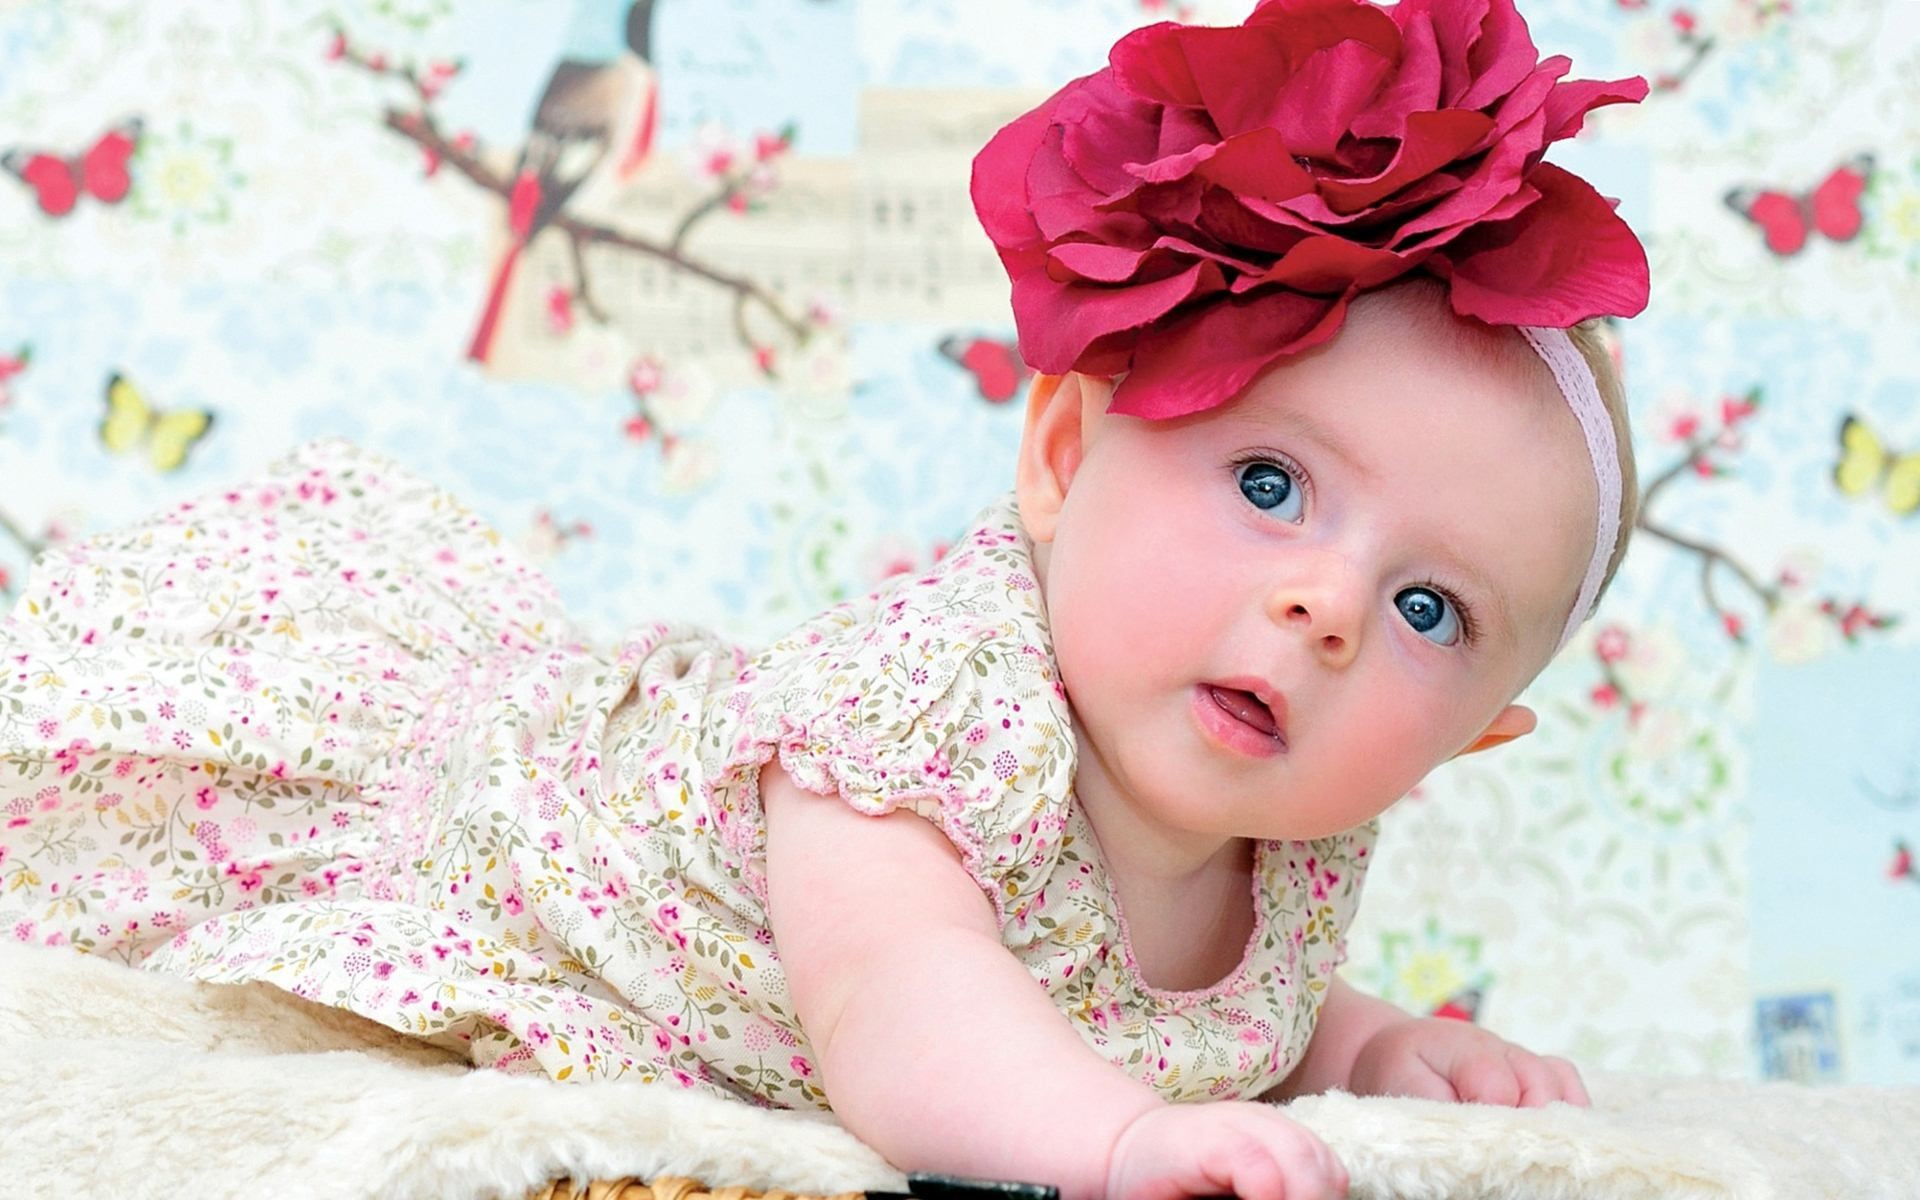 cute baby girl images and wallpaper Download babys aw